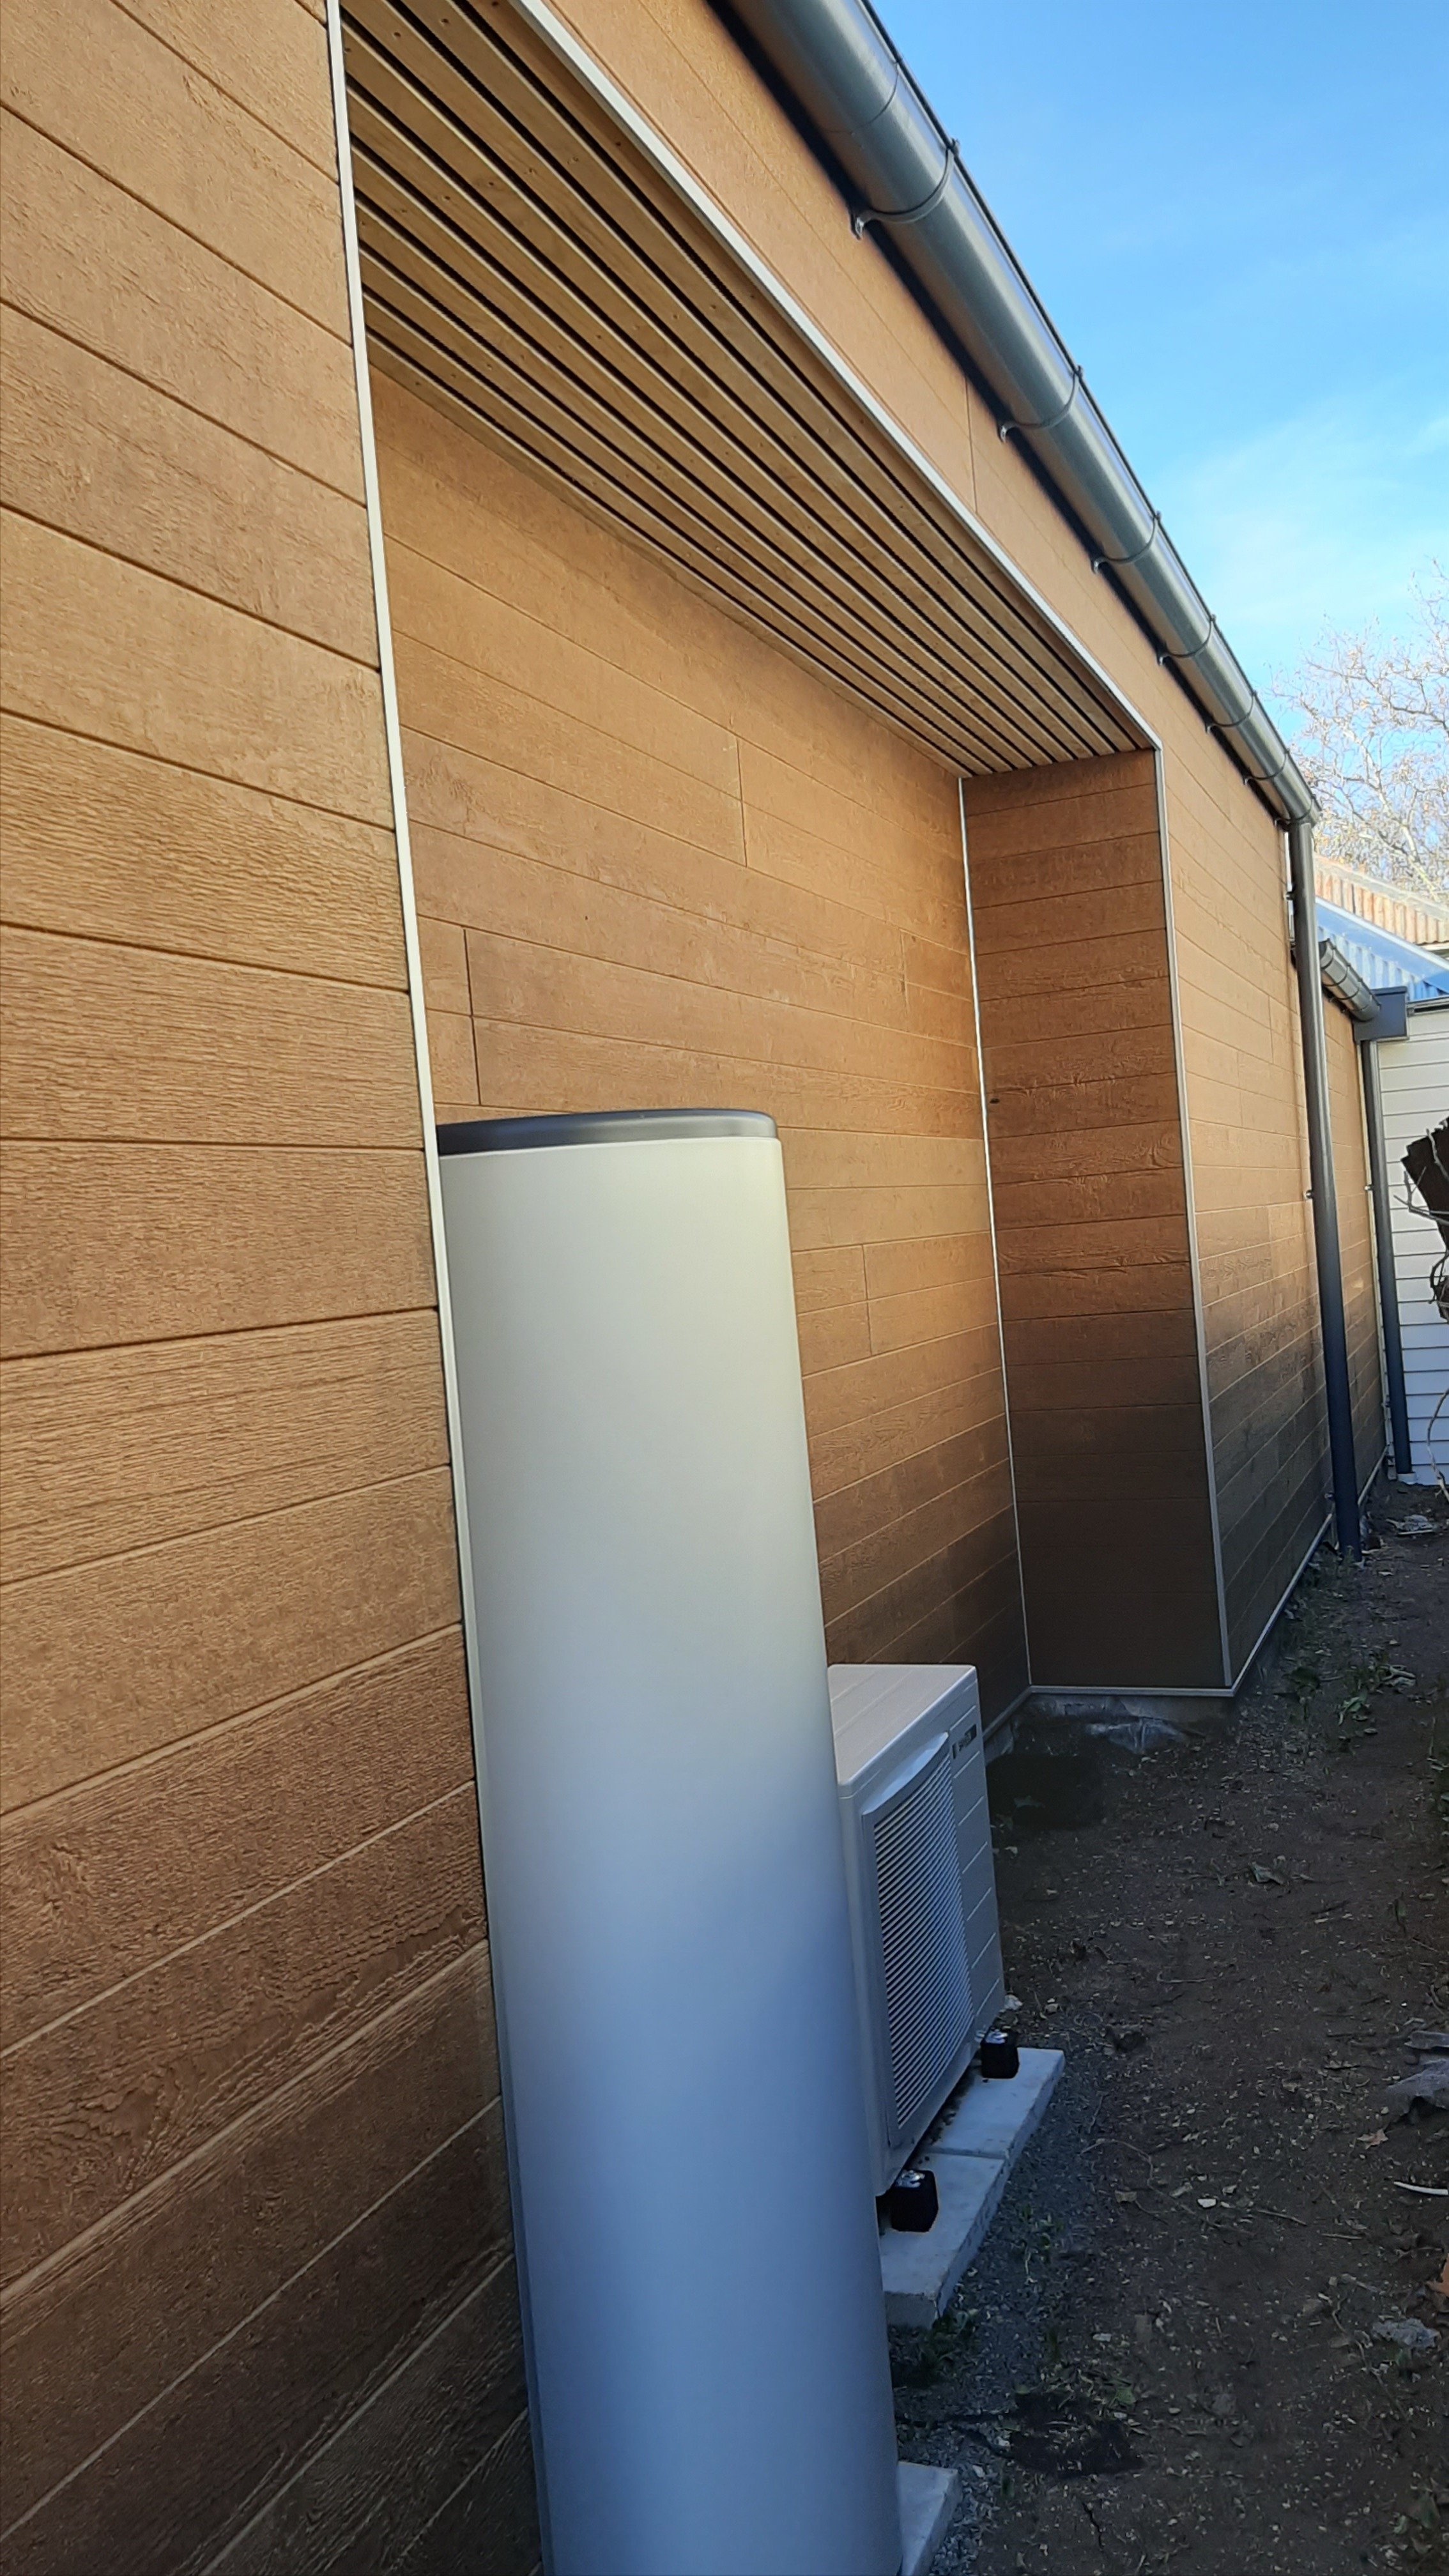 The open battens under the soffit allow fresh air to vent through the roof. This cools the building in summer and also remove moist air and condensation.